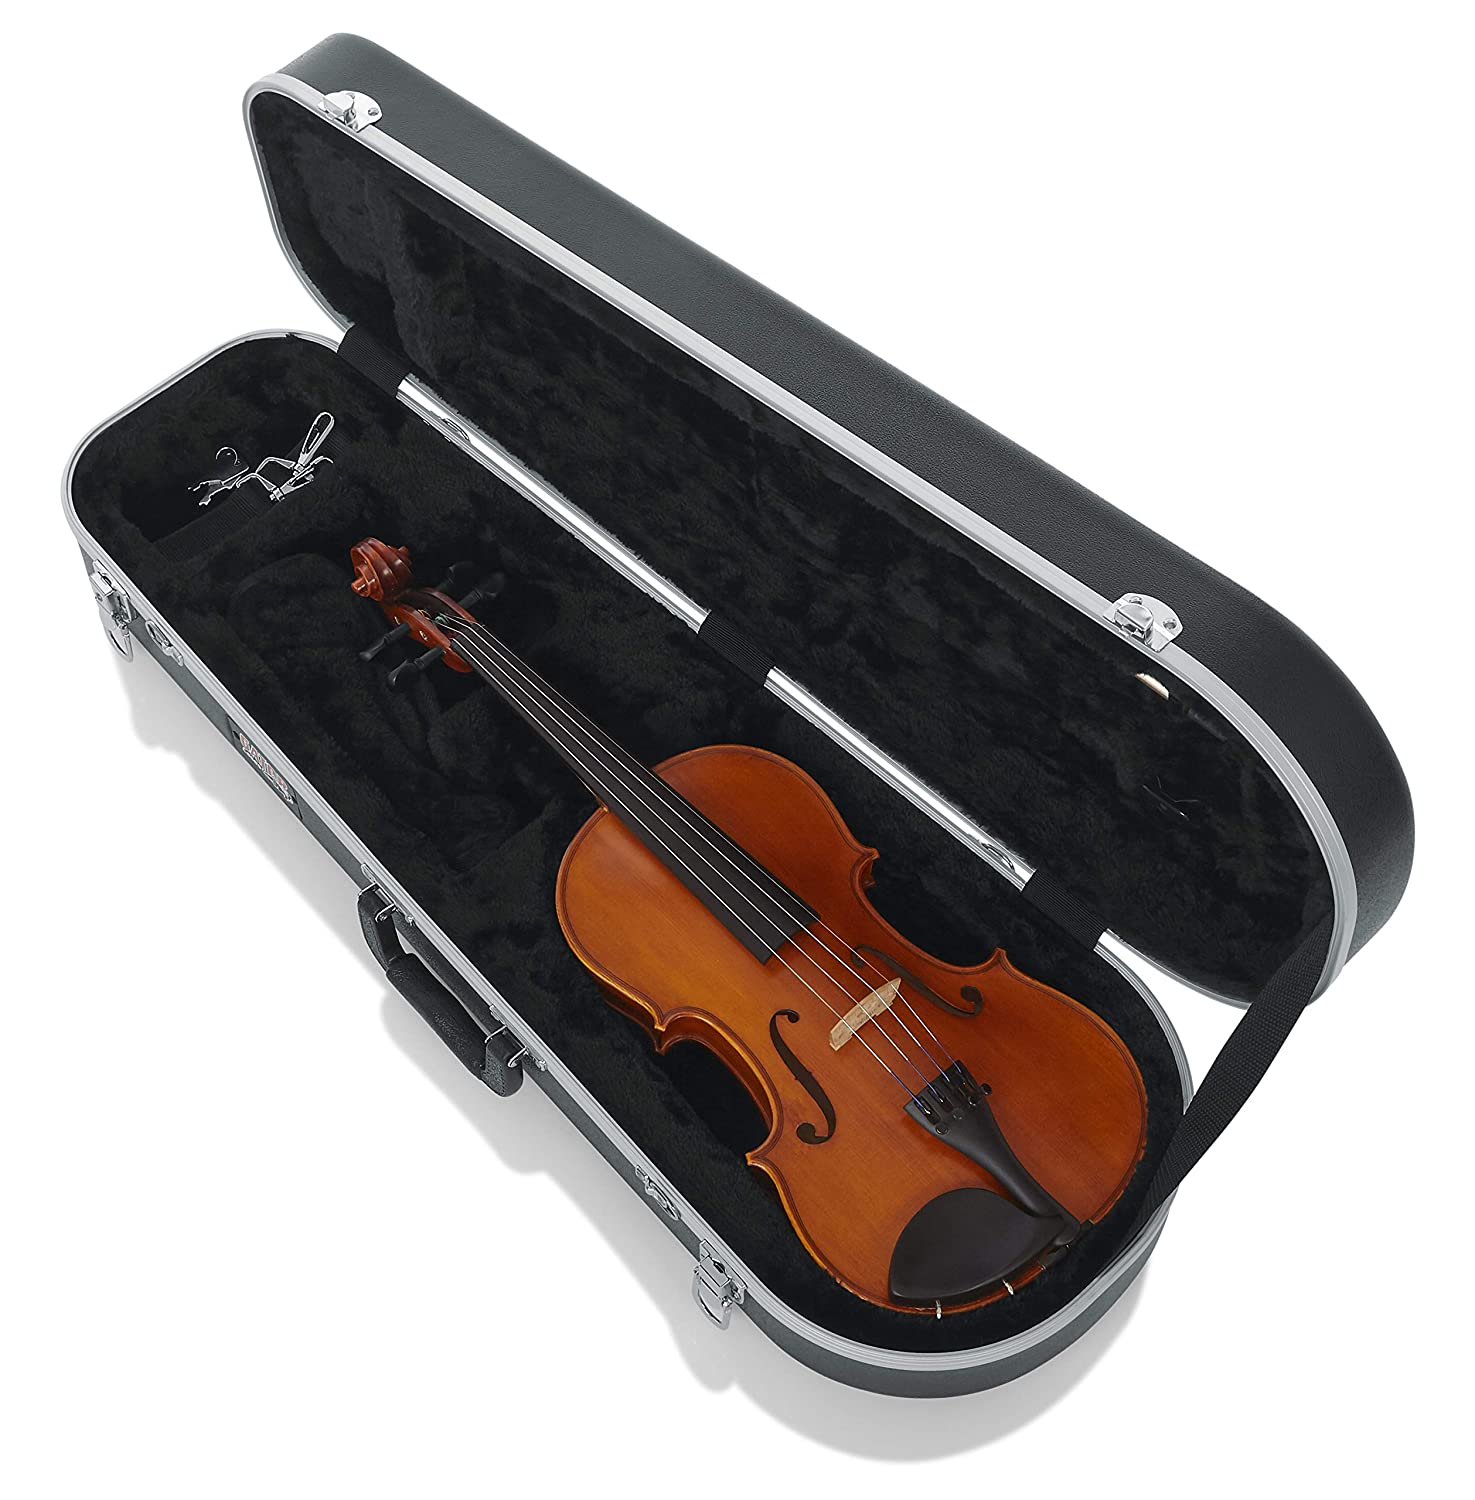 Gator Cases Lightweight Molded Violin Case with Locking Latch and Storage Compartment; Full Sized (GC-VIOLIN-4/4)